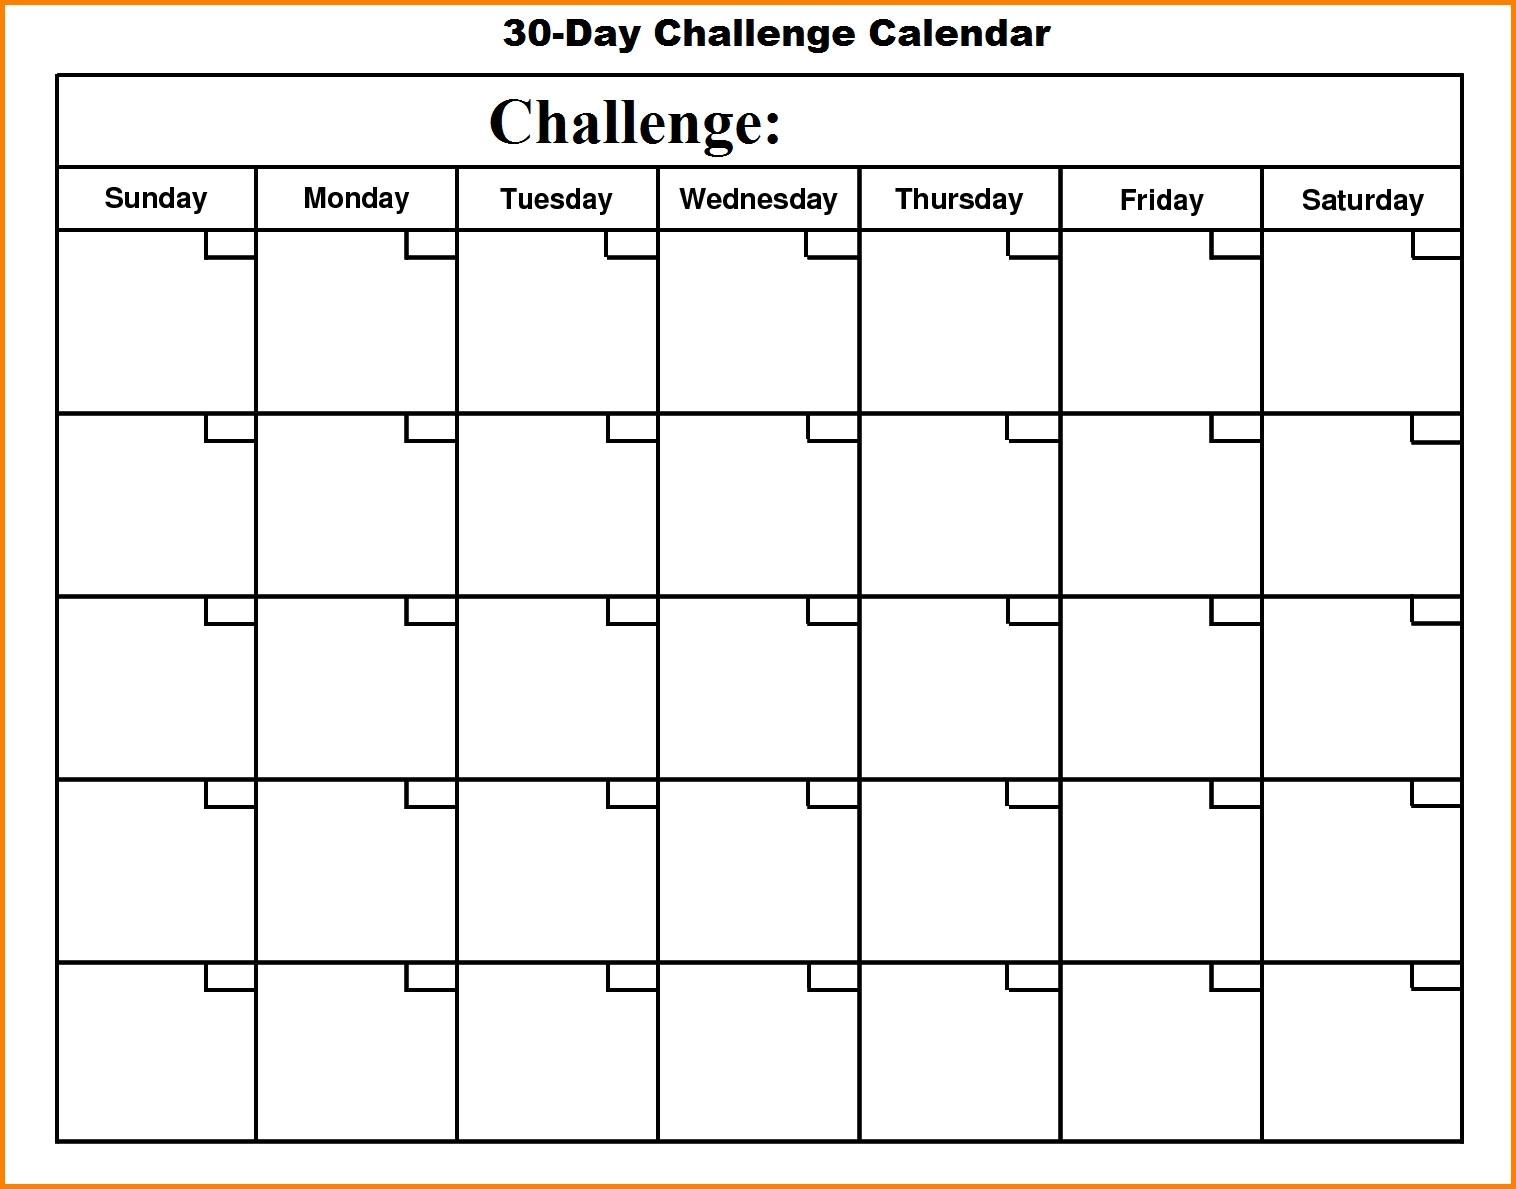 Template Design. 30 Day Calendar Template - Collection Of Template intended for Blank 30 Day Calendar Template